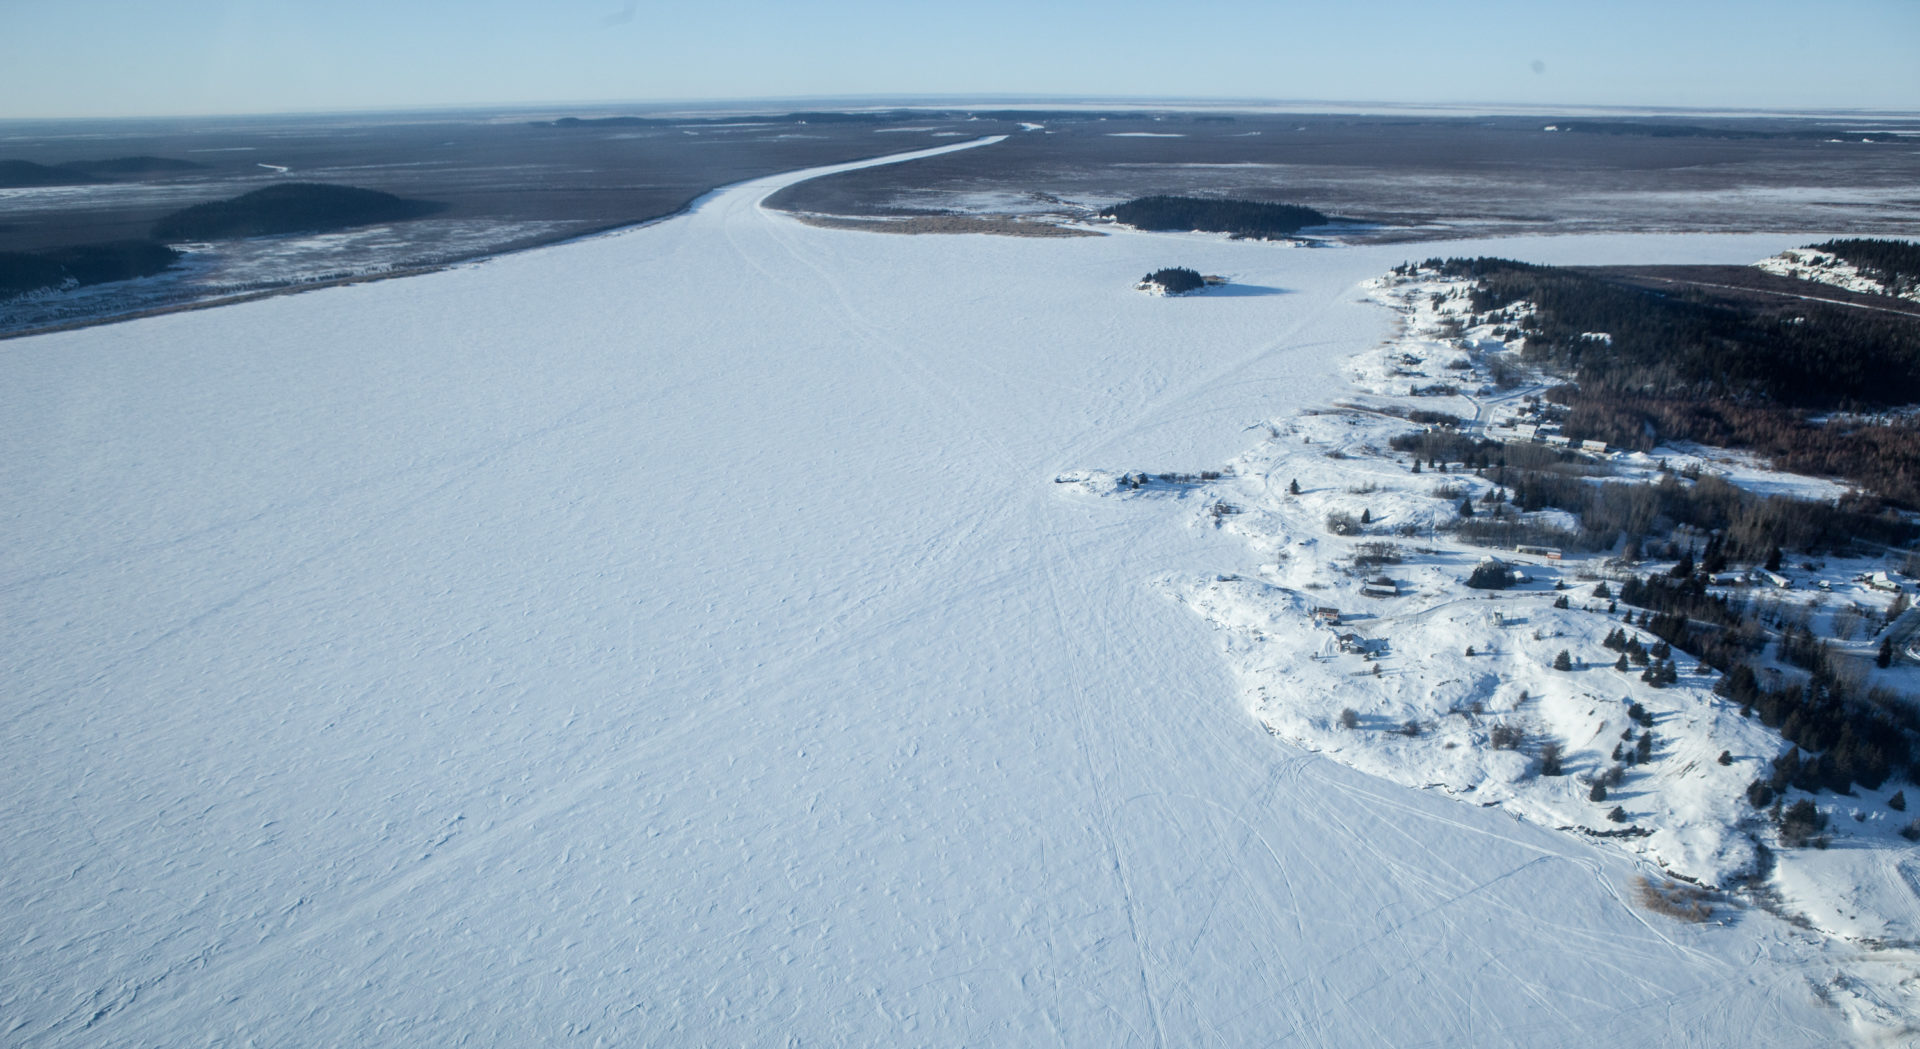 Frozen Lake Athabasca, Oilsands Cancer Story